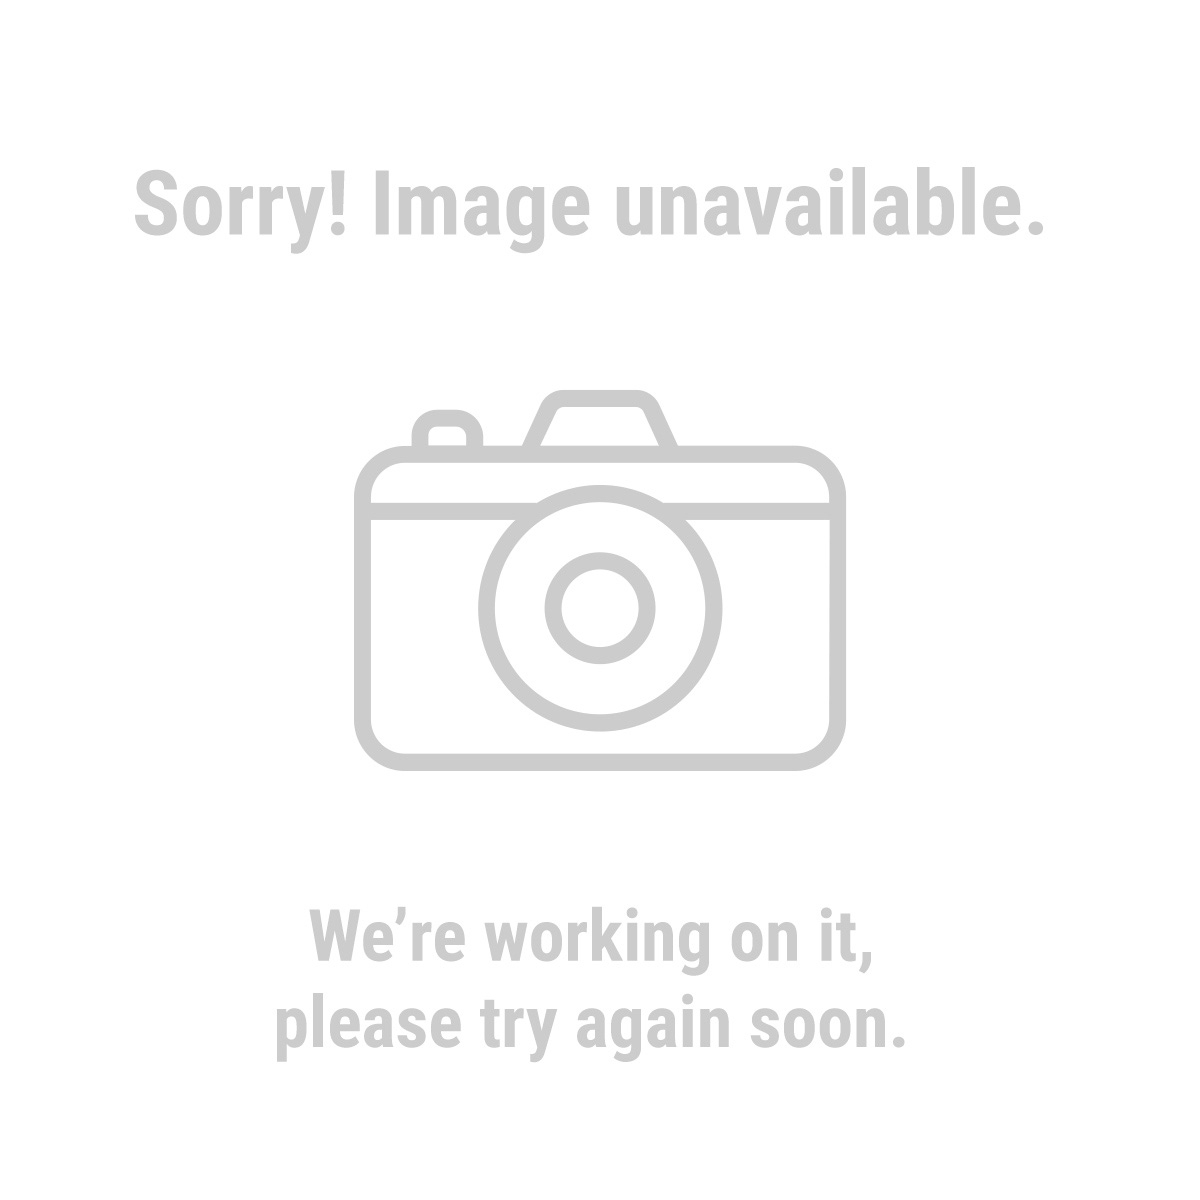 "Warrior 45433 4"" Cut-Off Wheel for Masonry, Pack of 10"